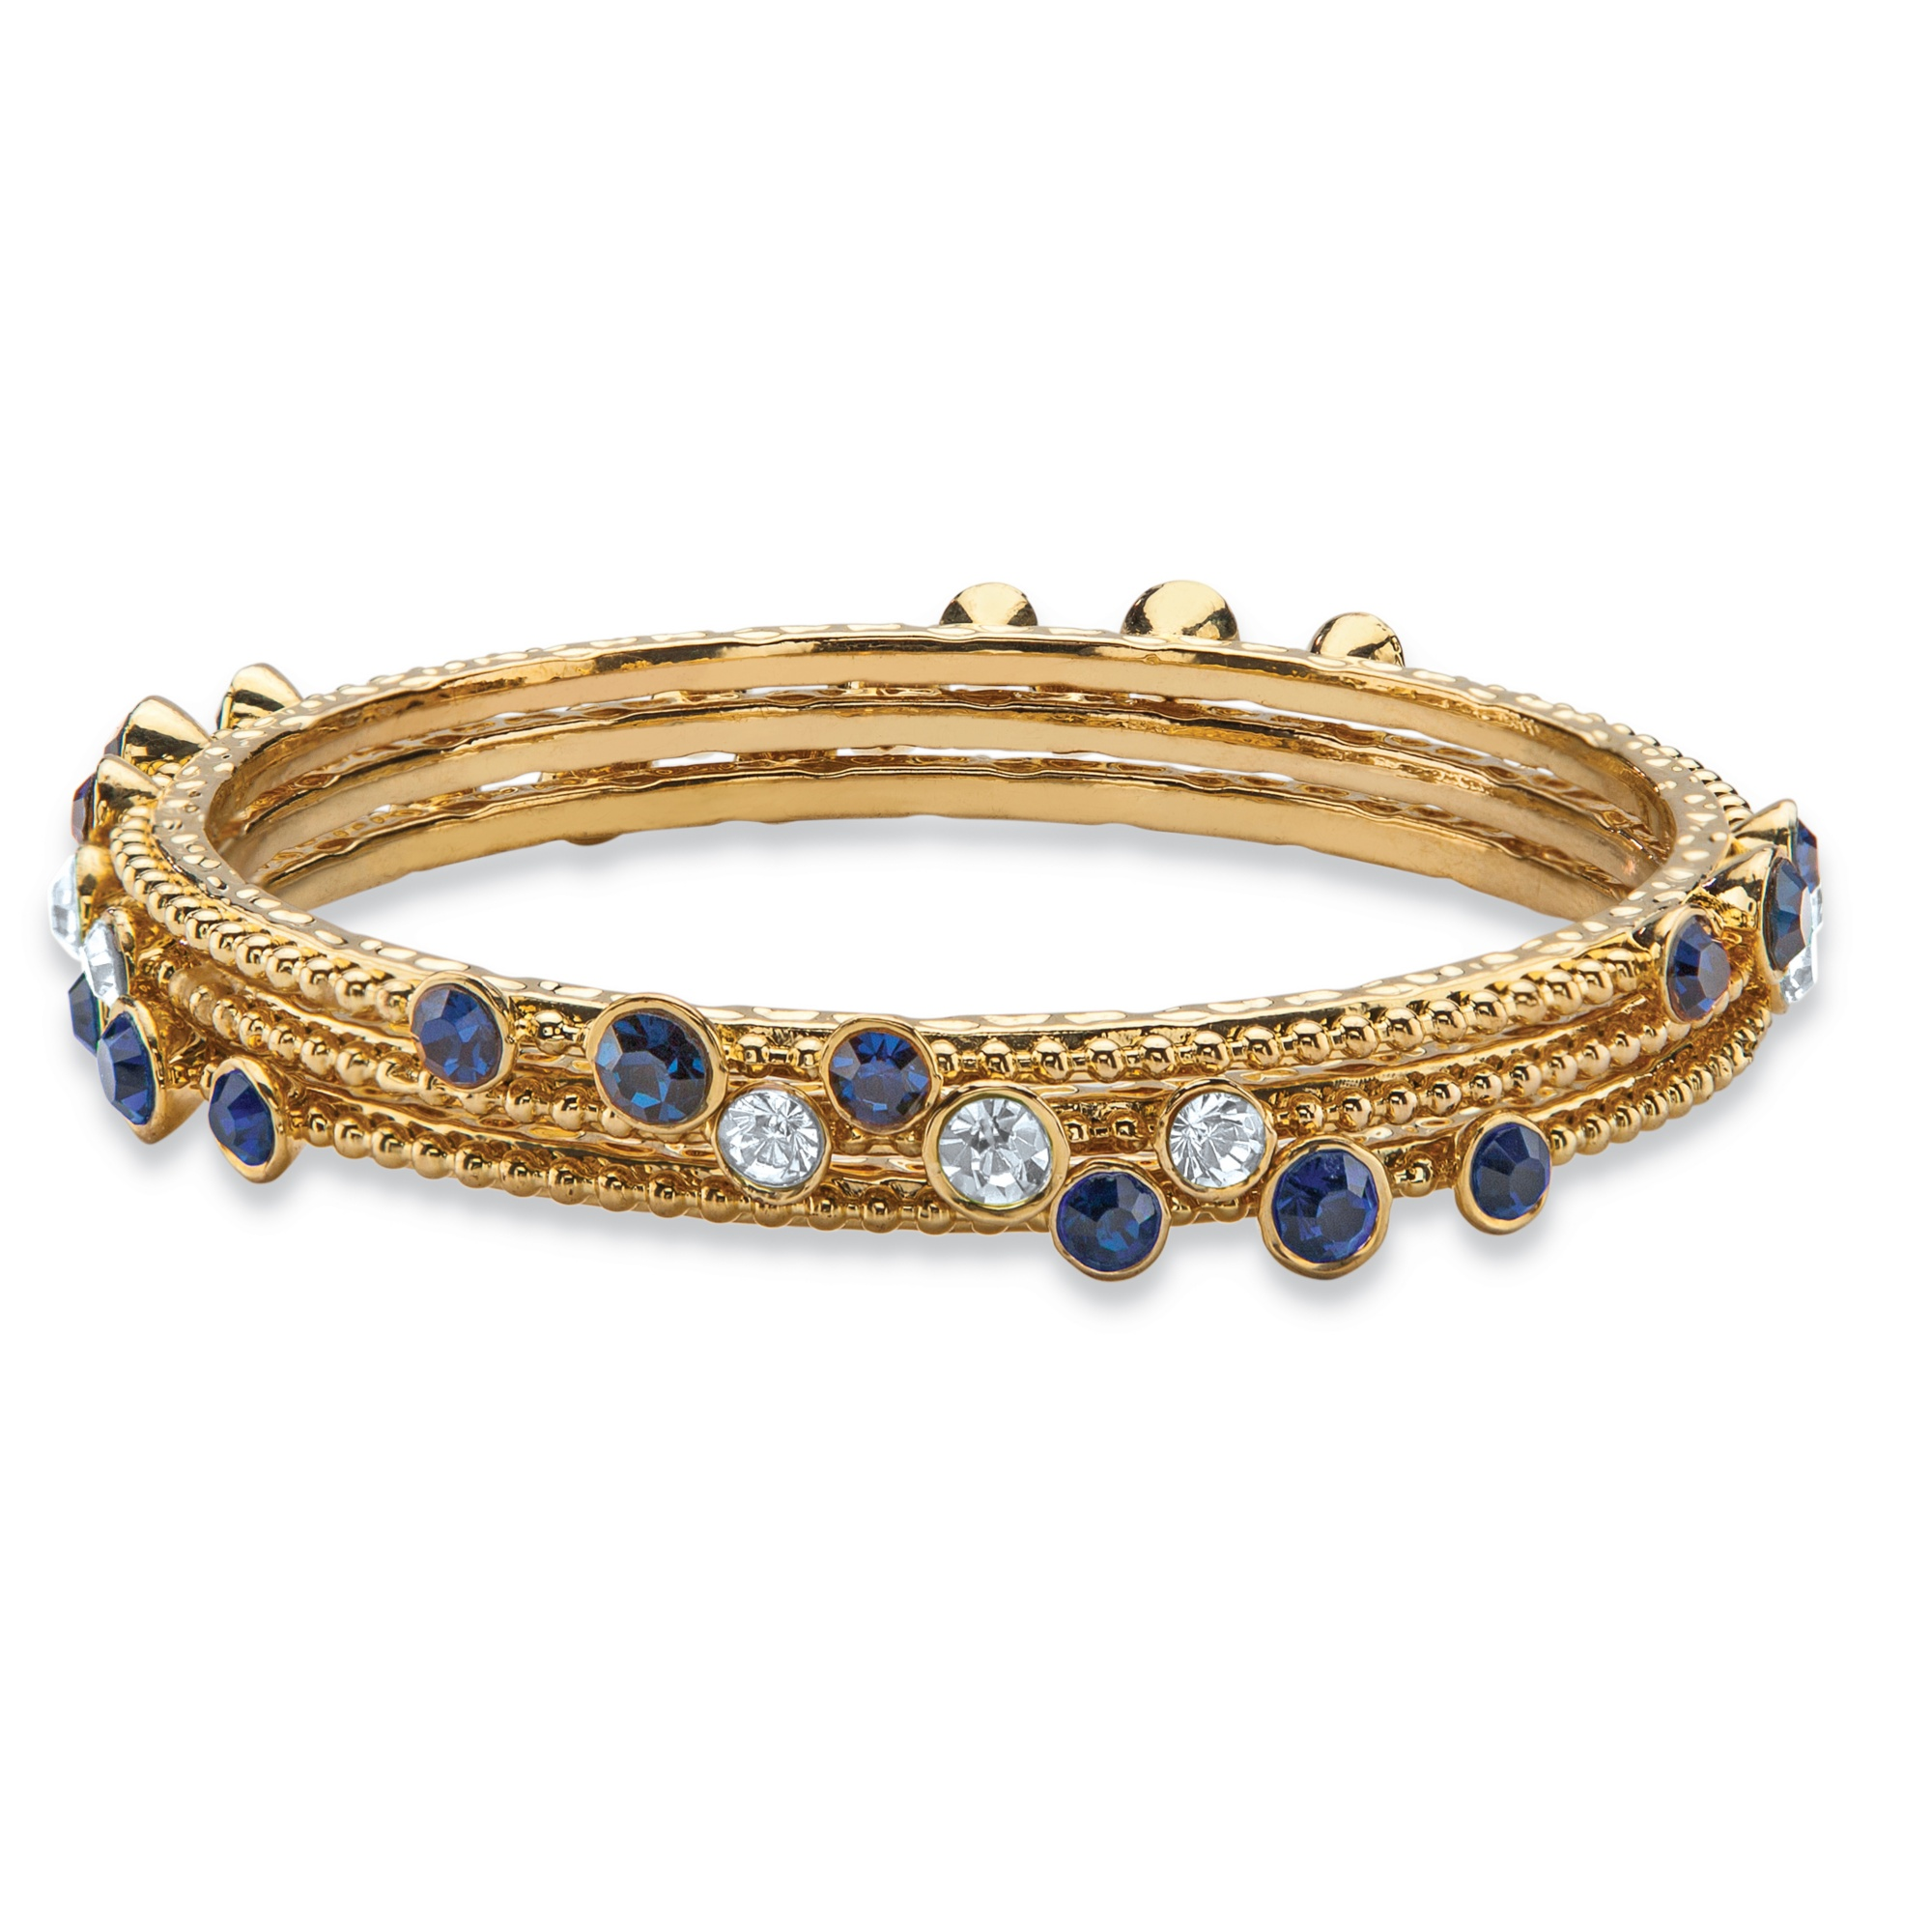 "PalmBeach Jewelry Simulated Blue Sapphire and White Crystal Three-Piece Hammered Bangle Bracelet Set in Gold Tone 9"" PartNumber: 00410903000P KsnValue: 9367003 MfgPartNumber: 57593"